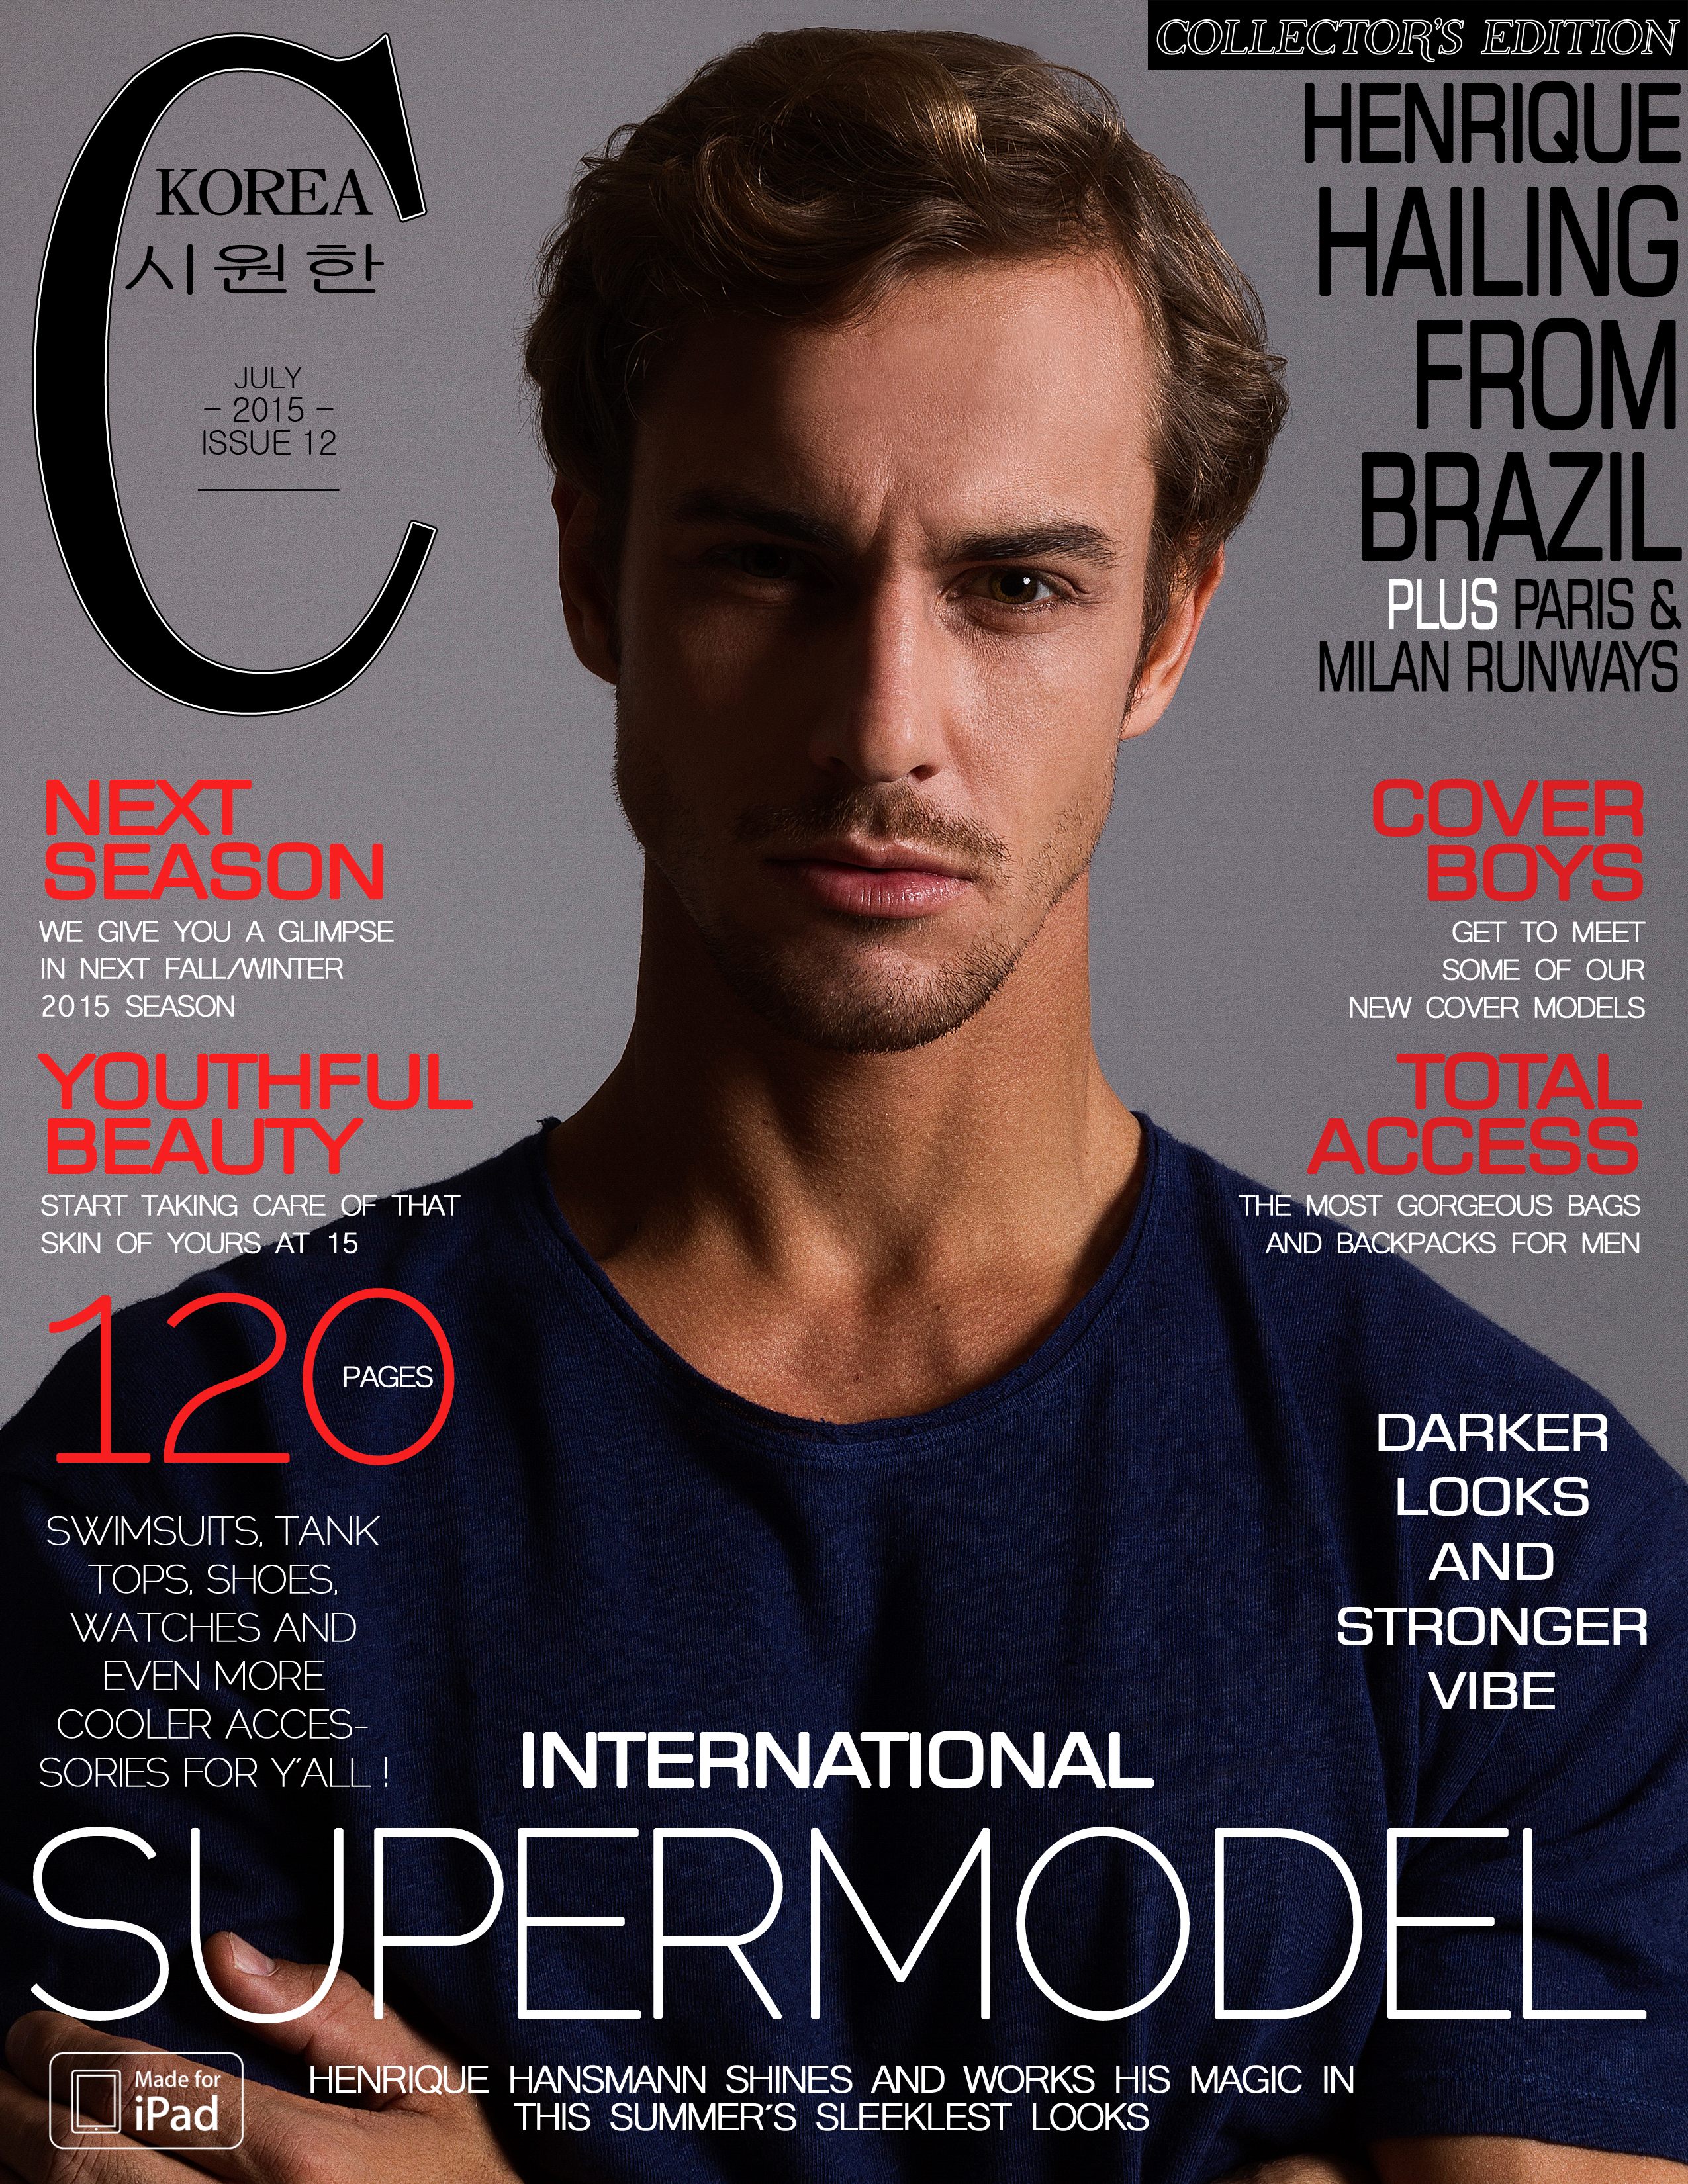 Brazilian Supermodel Henrique Hansmann covers the July issue of Cool Korea, marking the first time that the Brazilian sensation has done so. Flying to Europe he came to Madrid to shoot an exclusive story for the magazine. Styled and shot by Bertrand Vergnes, he was made up by Spanish makeup artist Miriam Franco. He also posed for a 14 pages fashion editorial spread featuring international Spanish brands.